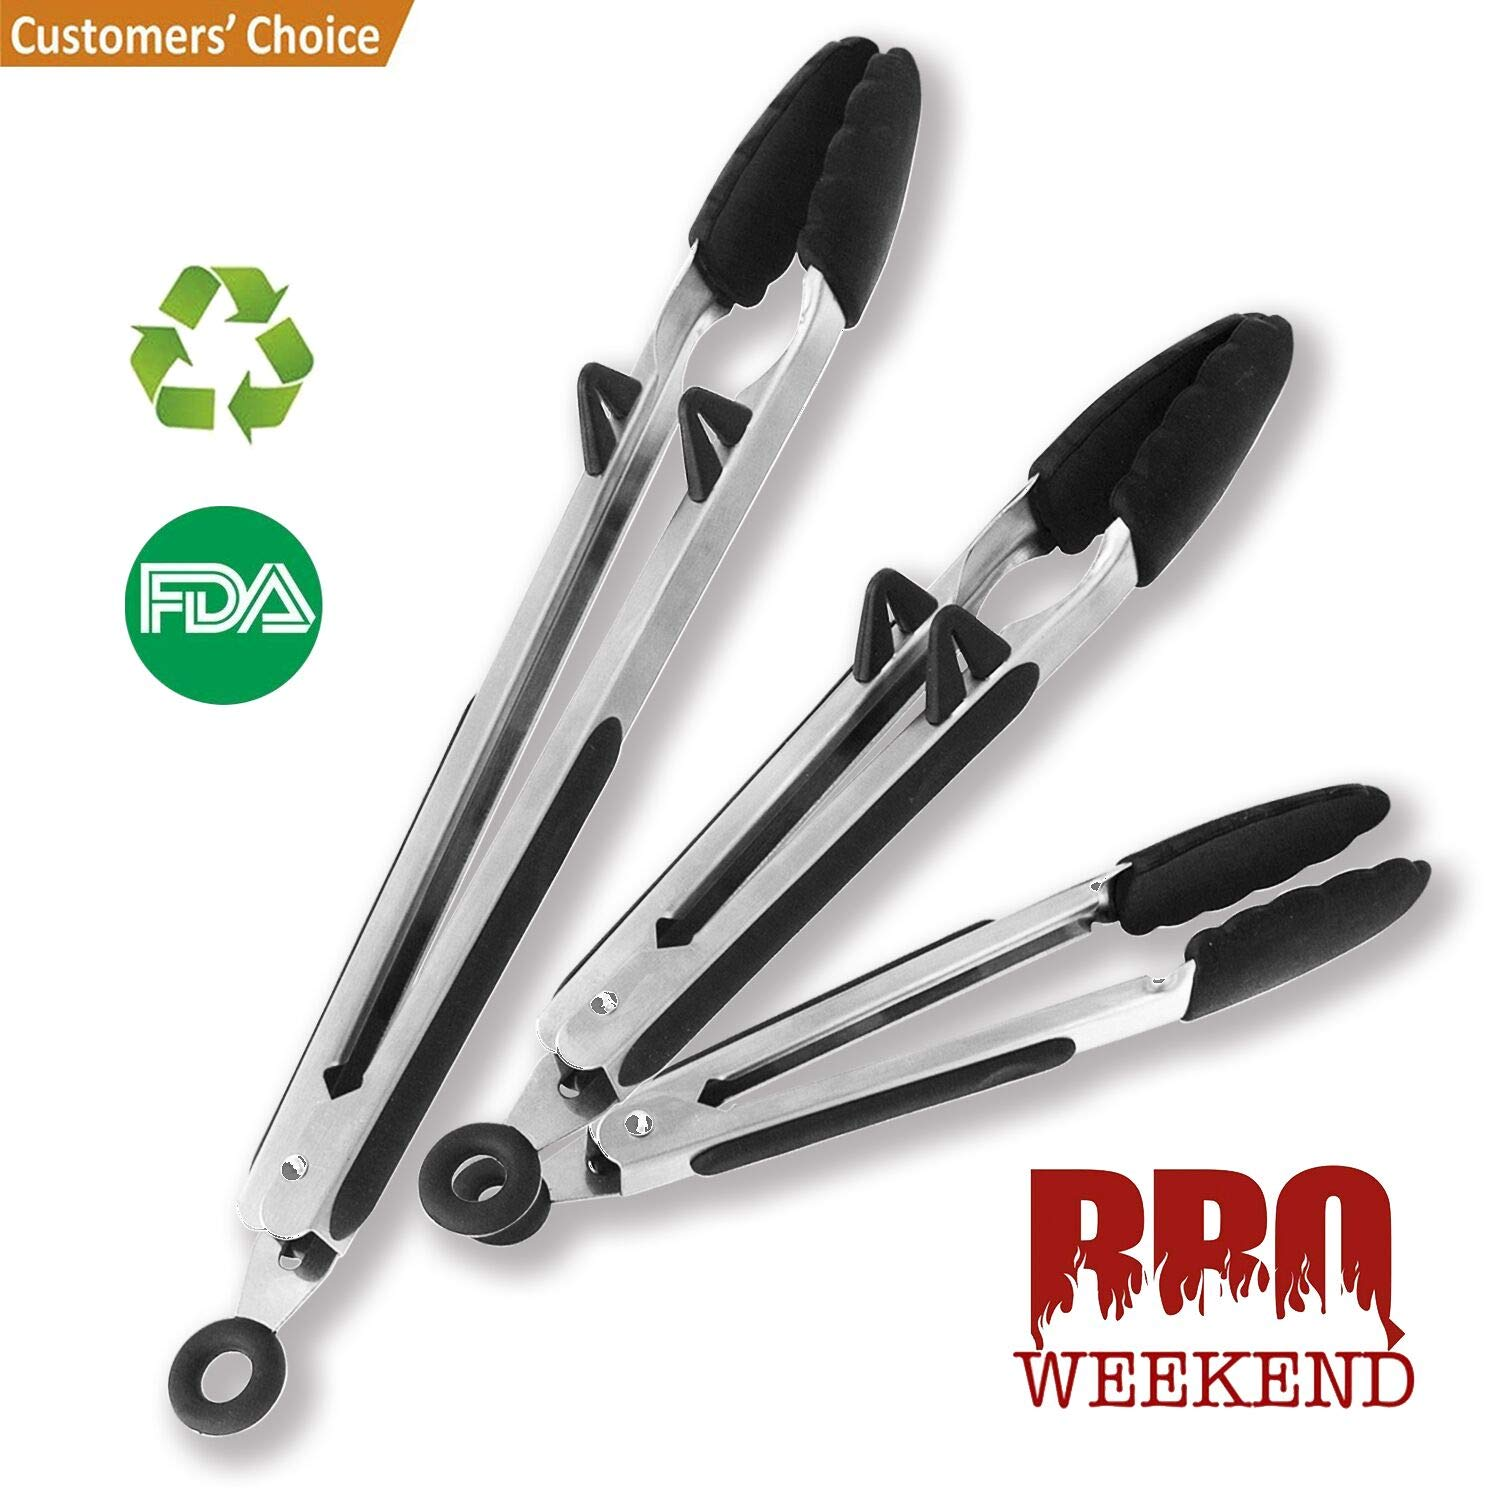 Kitchen Tongs Set Stainless Silicone Cooking Tongs - 3 piece Set of 7,9 and 12 inch Heat Resistant Locking Salad Tongs with Built-in Stand - A Serving and Feeding Set for BBQ,Grill,Salad,Cooking Arzerlize